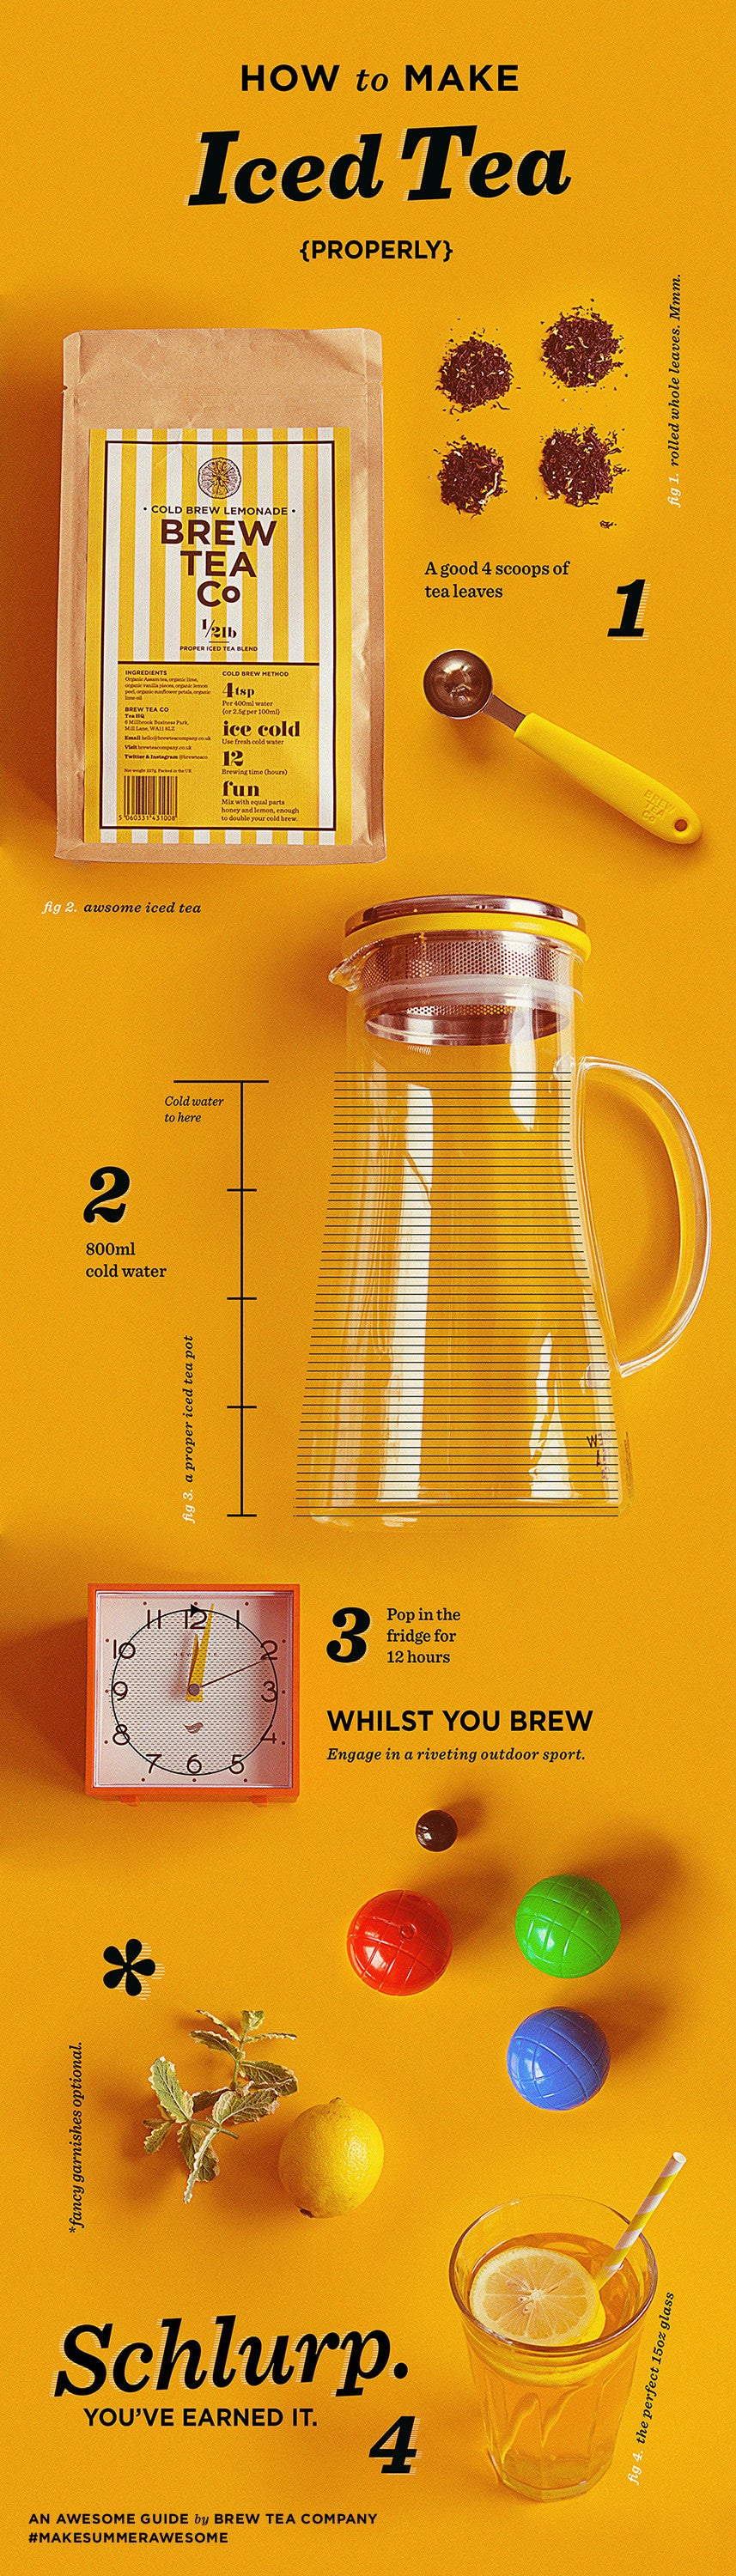 How To Make Iced Tea, The Awesome Way